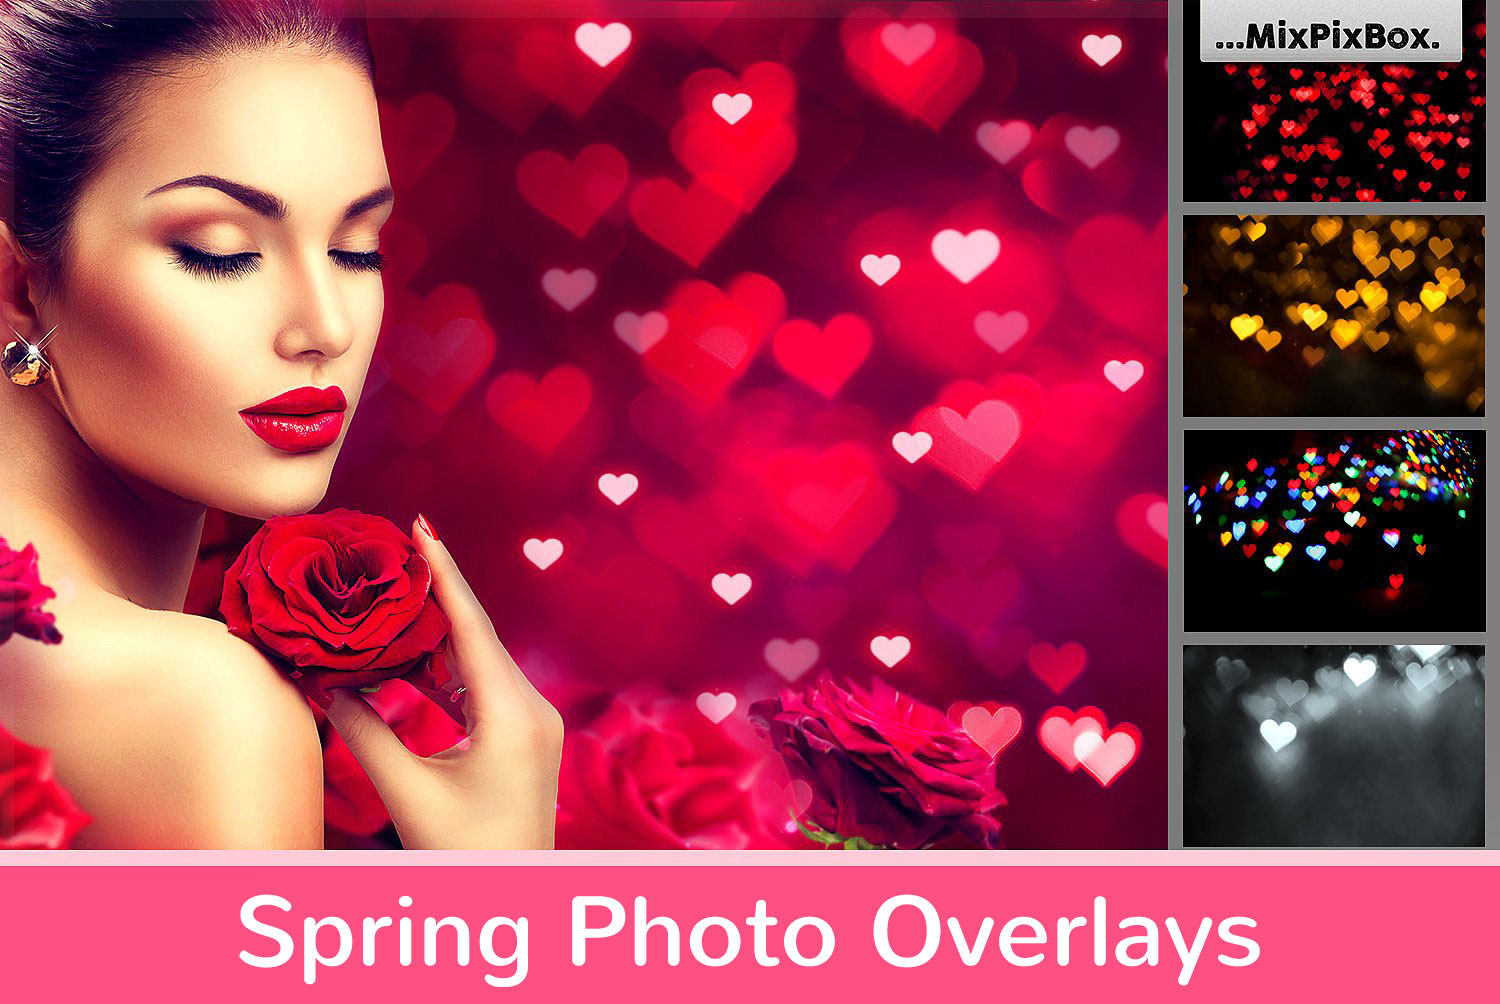 Spring Photo Overlays - 430 Amazing overlays for only $9